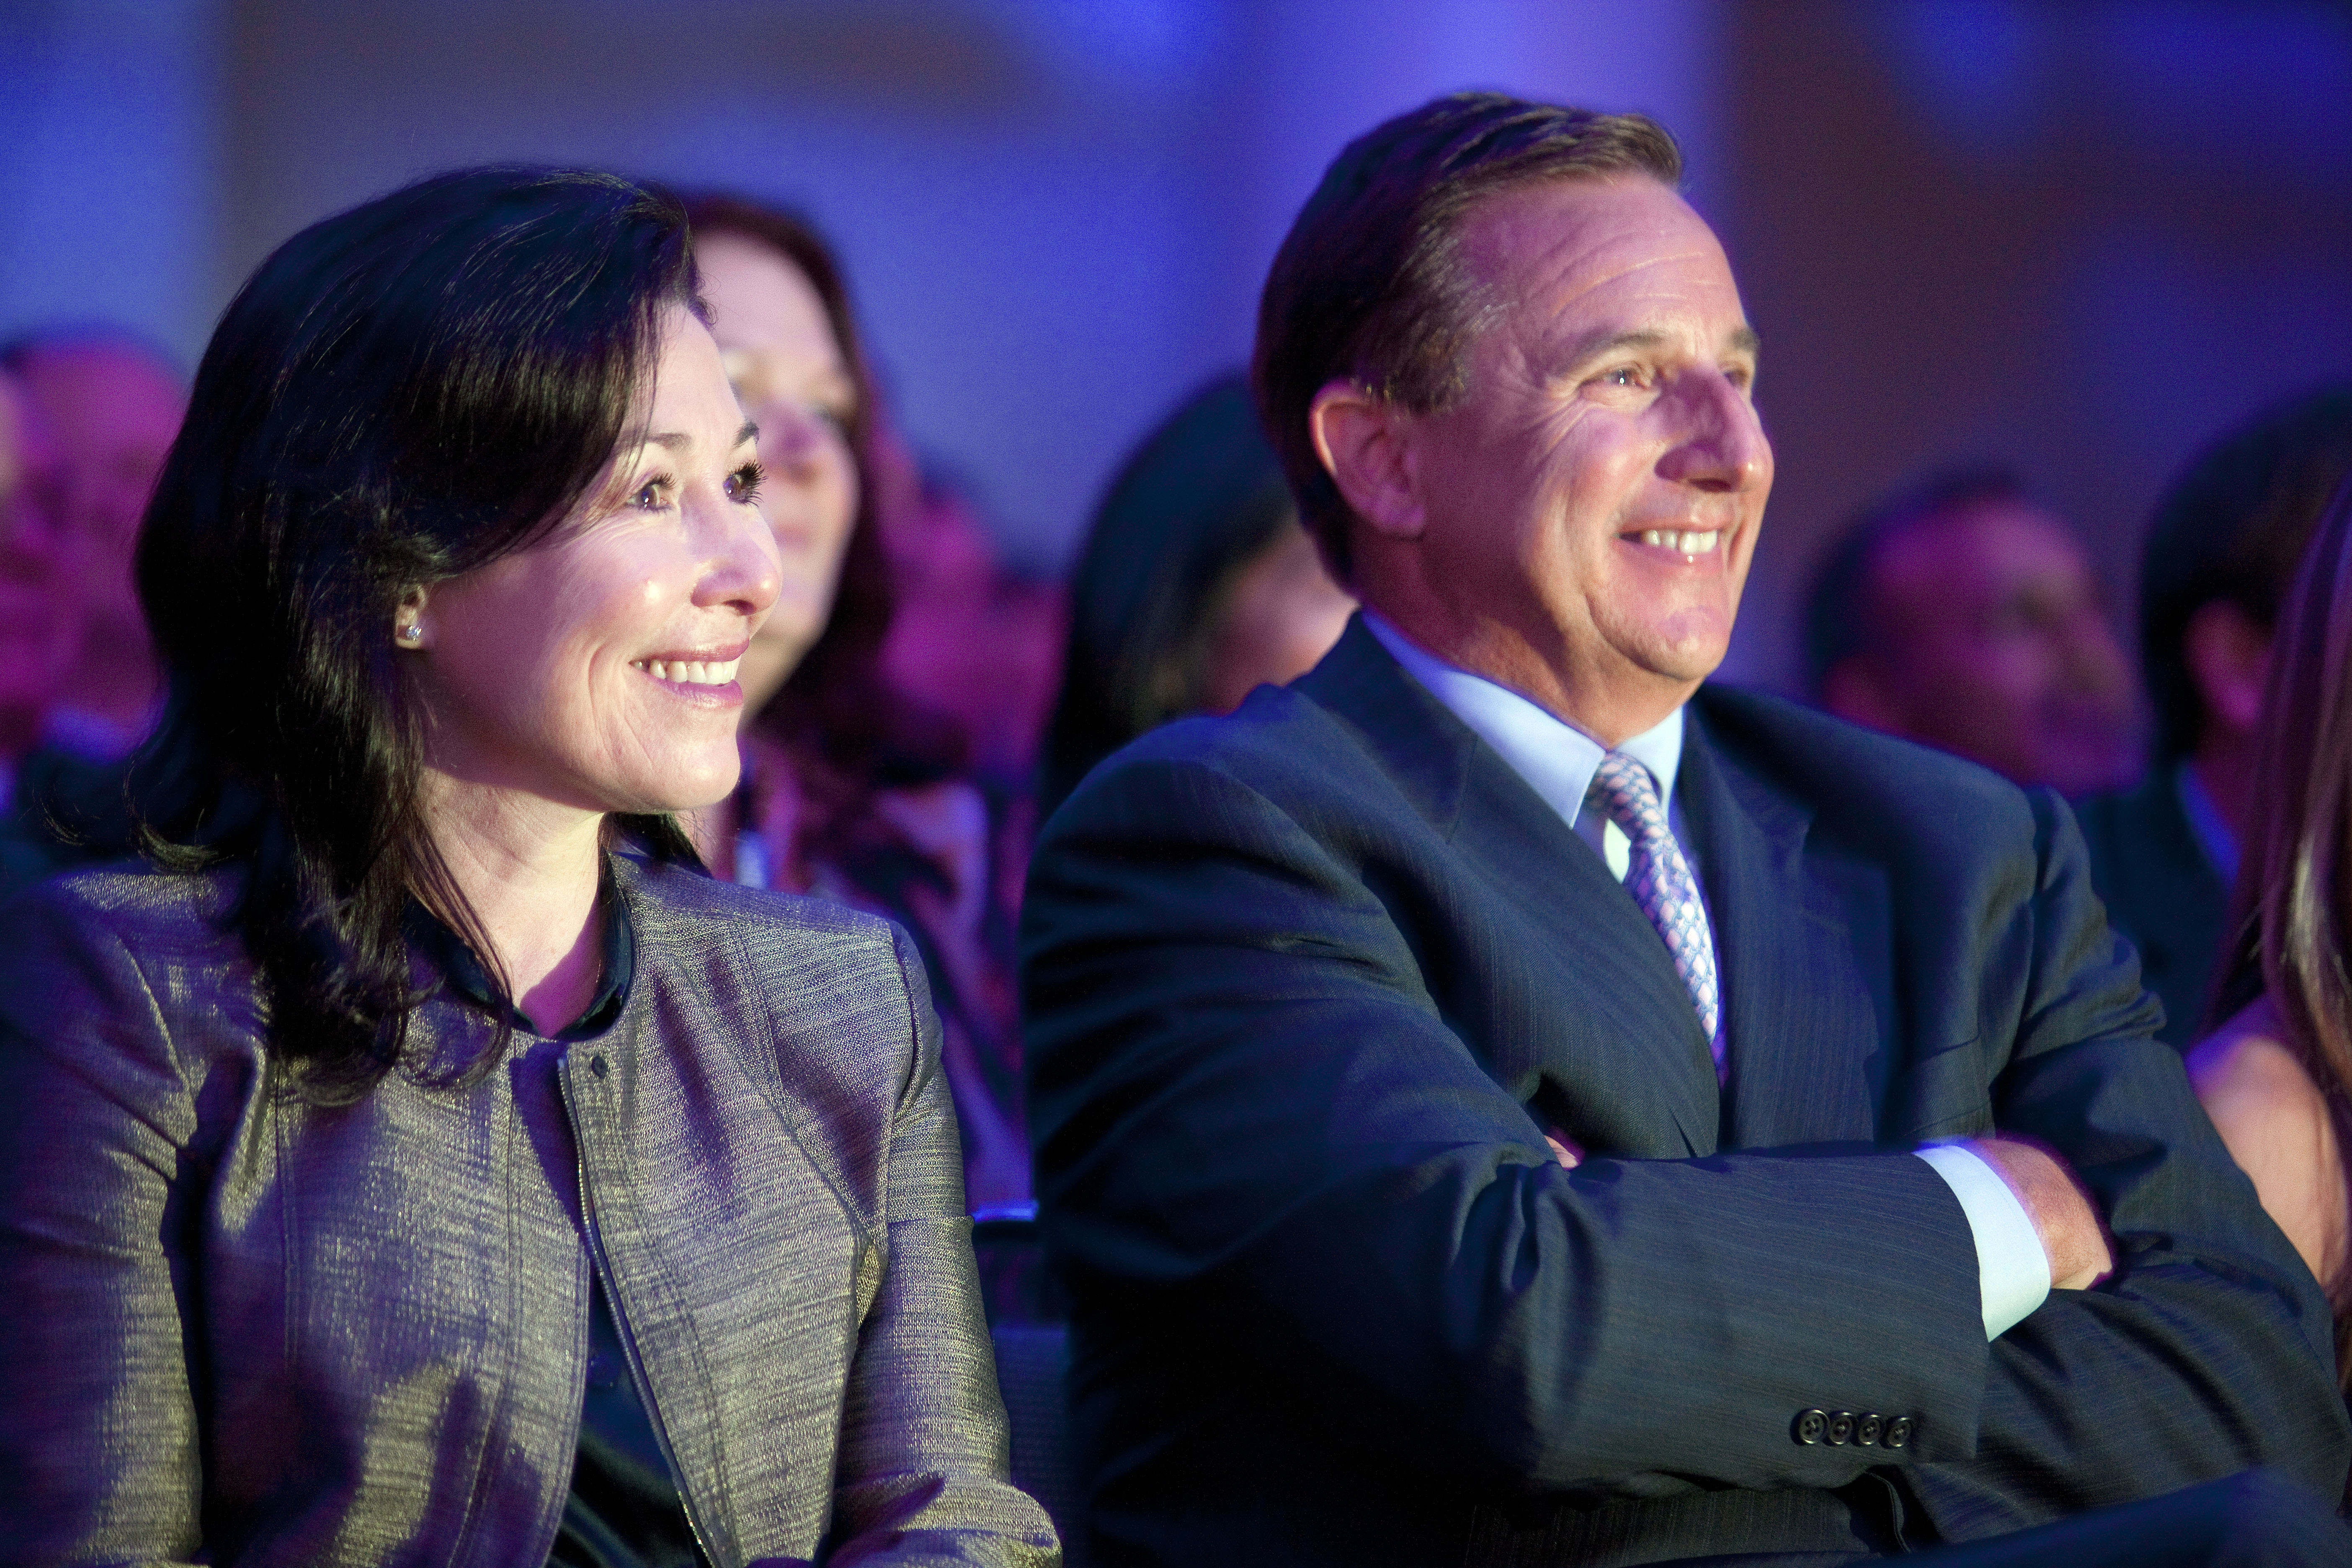 USA-Technology- Oracle Names Catz and Hurd New Co-CEO's